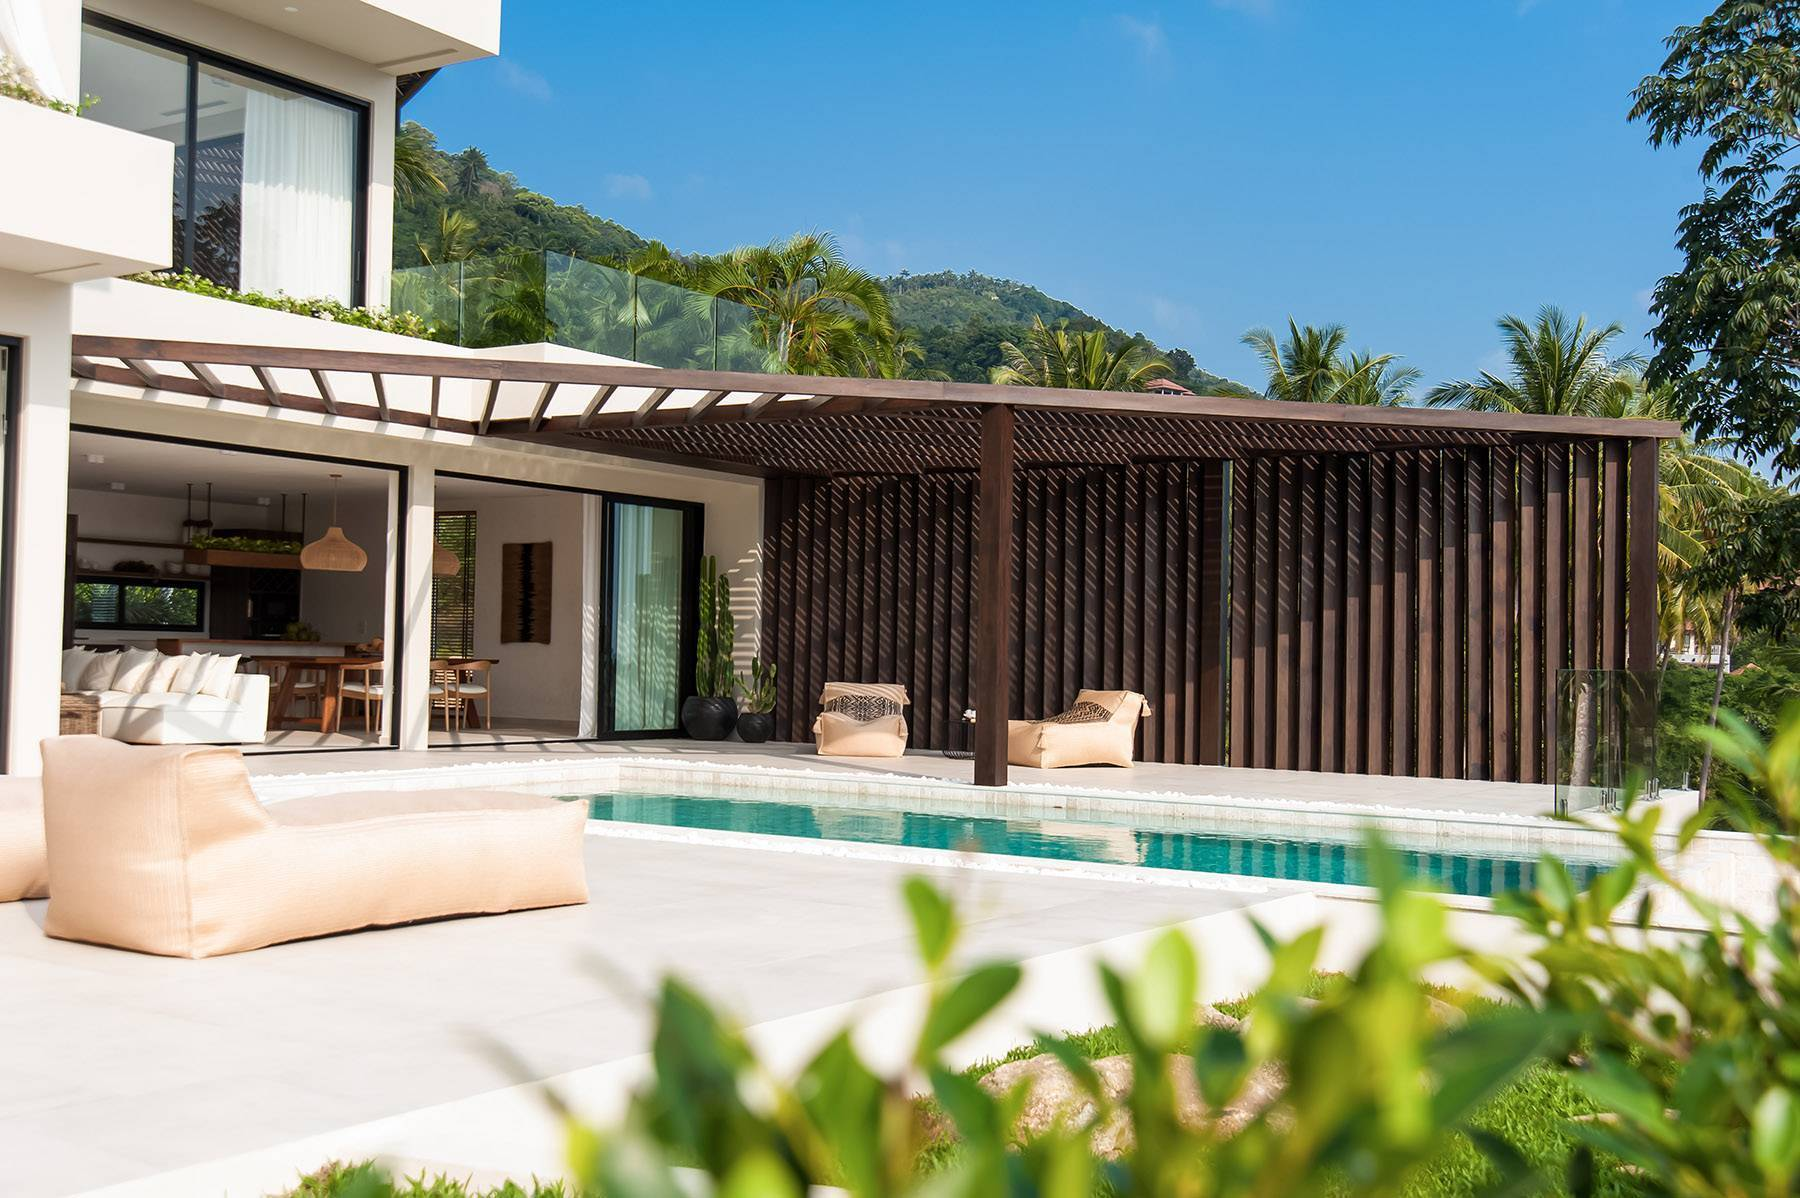 Istani Villas - Eco Style sea view villas for sale in Koh Samui: Istani Villas - Eco Style sea view villas for sale in Koh SamuiIstani Villas - Eco Style sea view villas for sale in Koh Samui